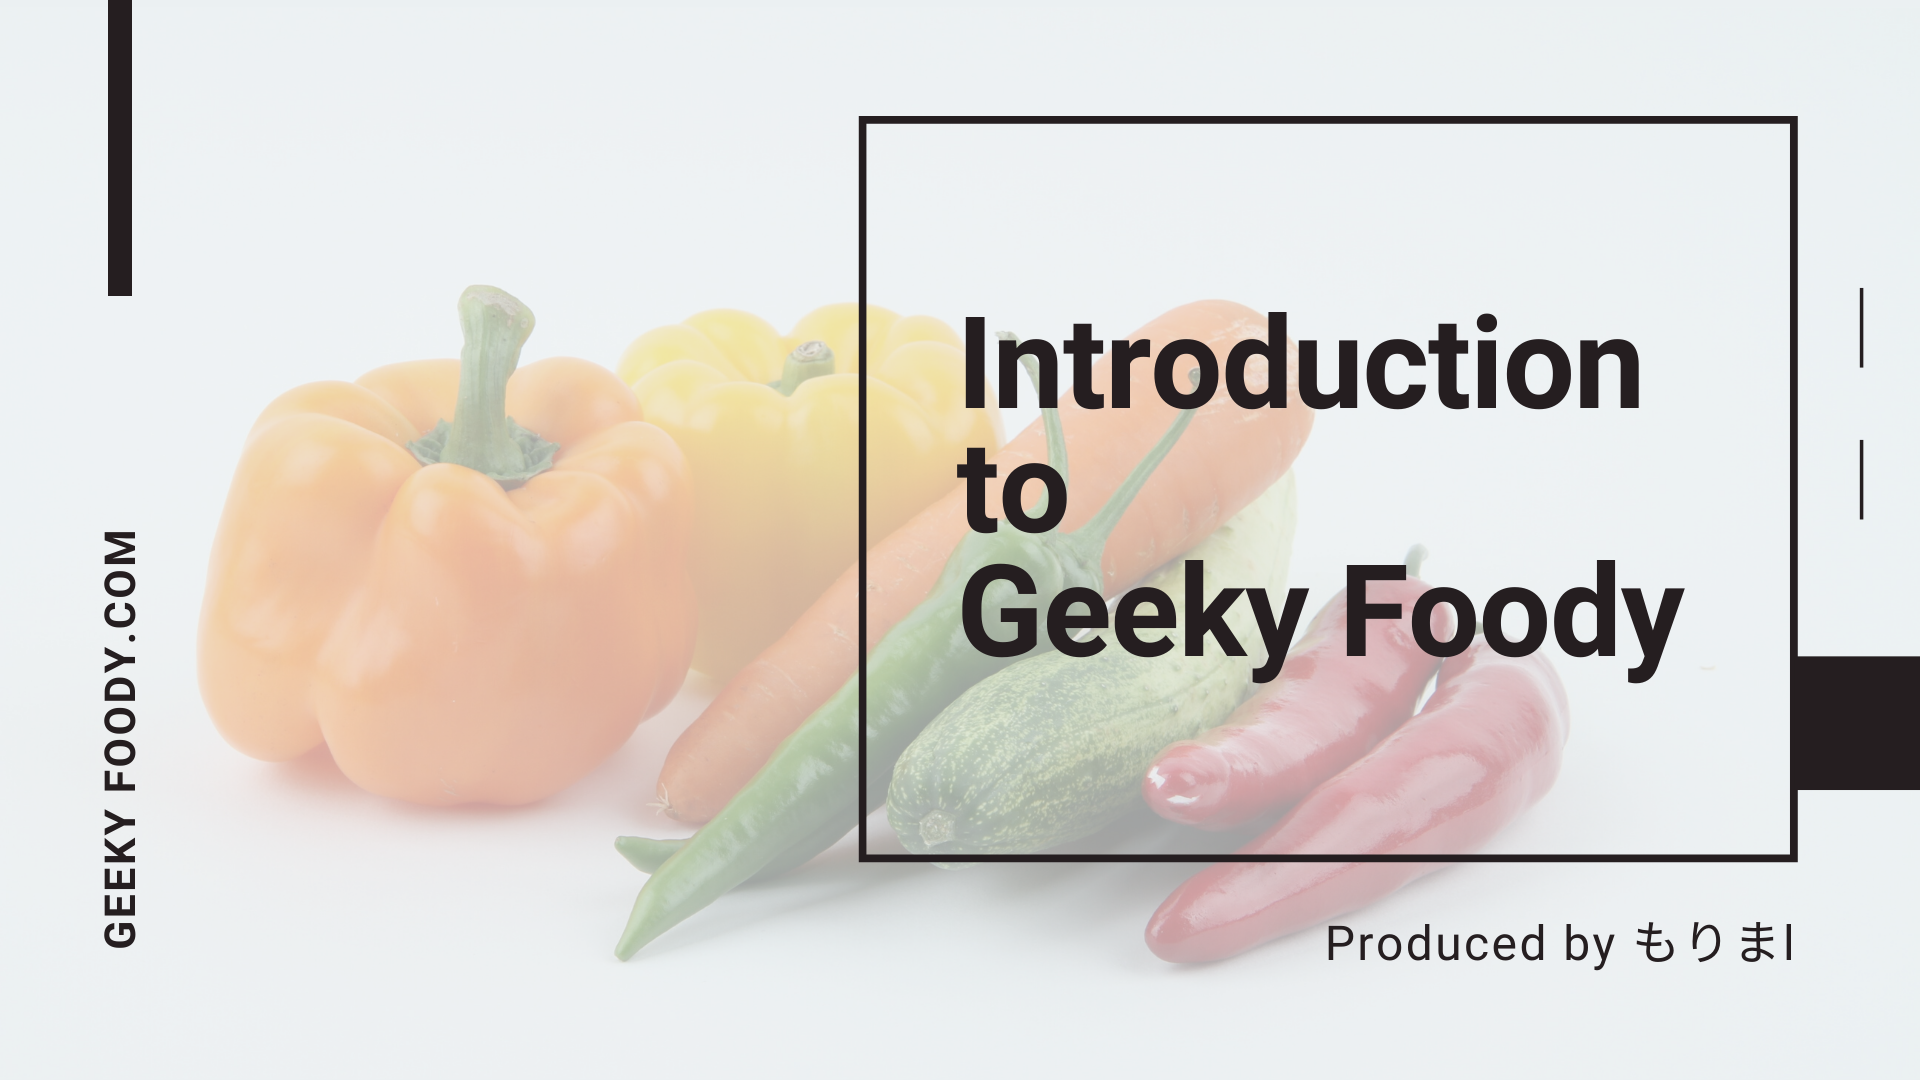 Geekky Foody 自己紹介